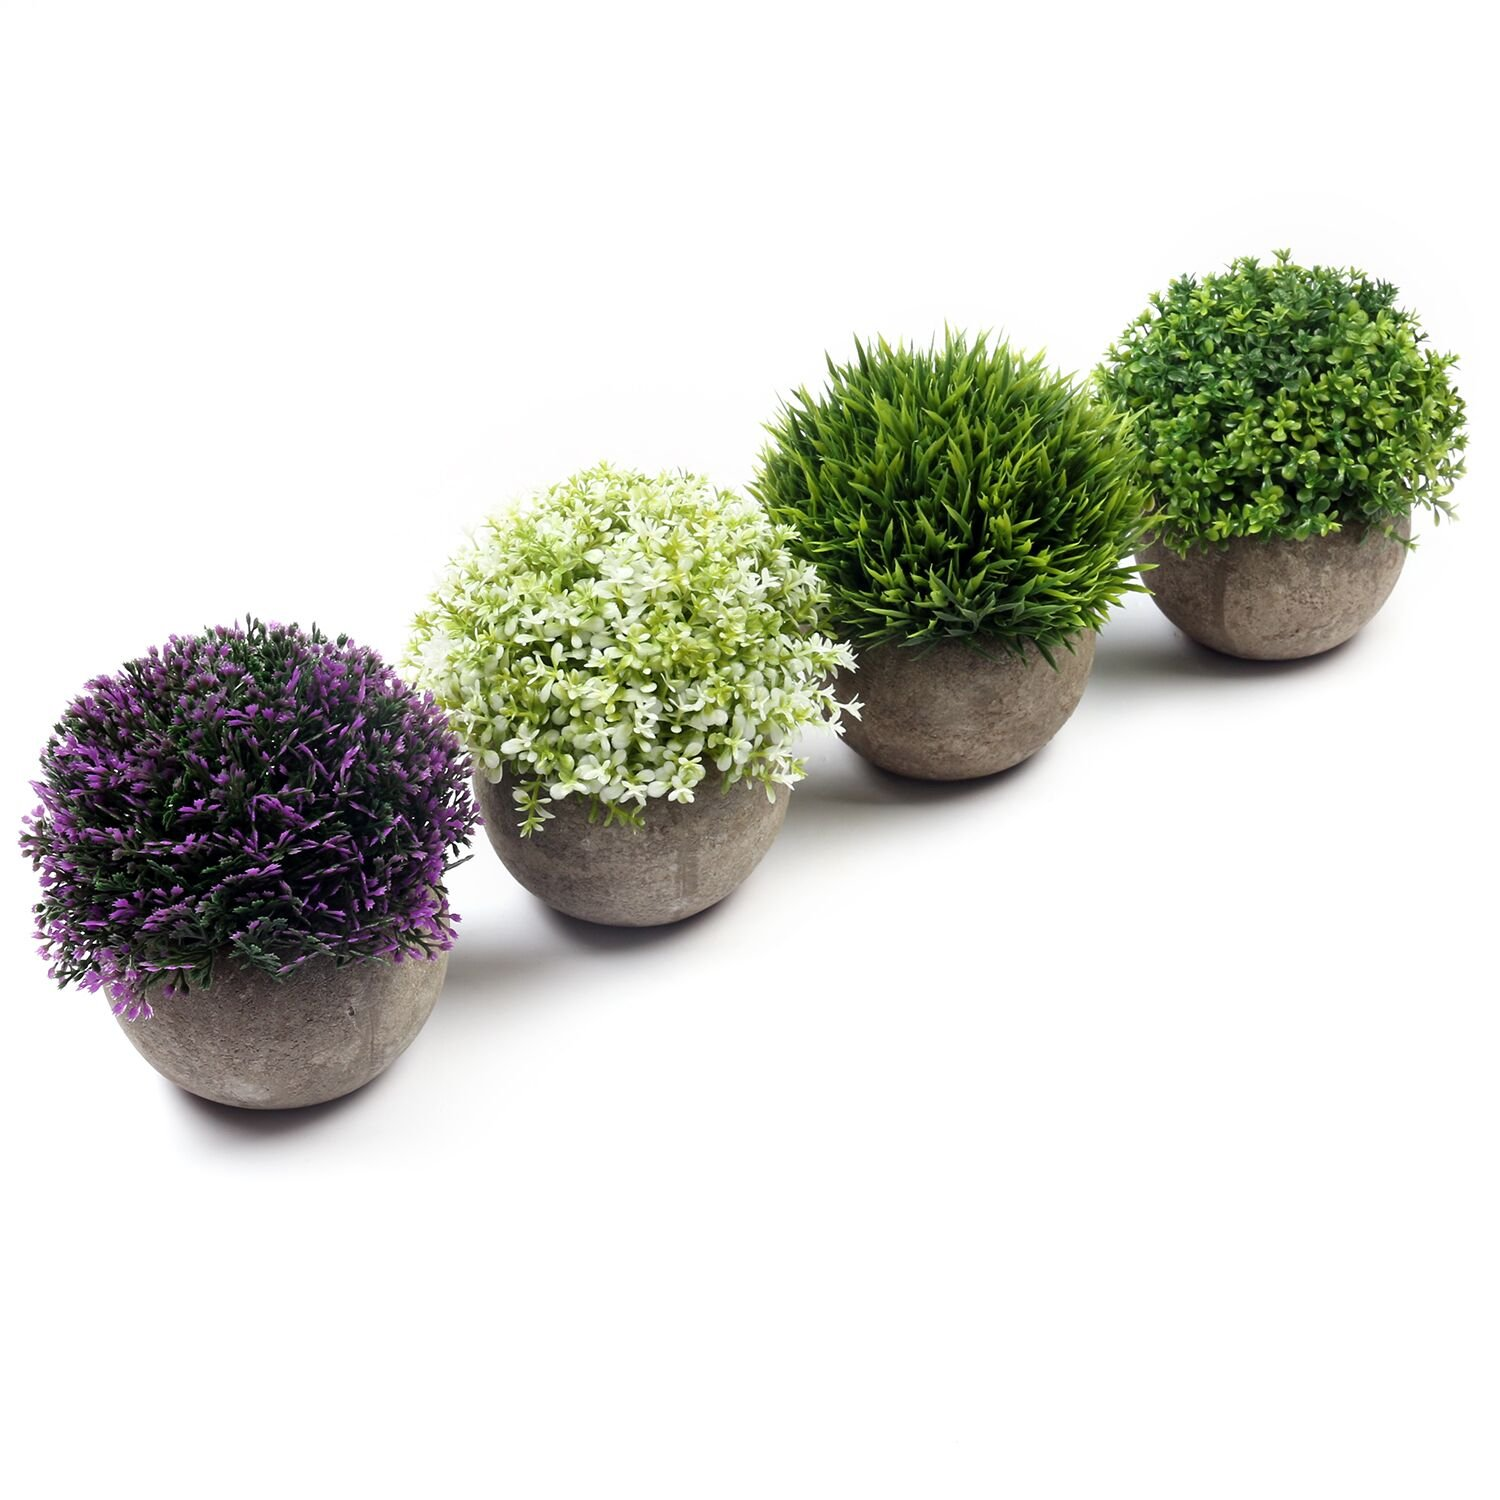 U'Artlines Artificial Plastic Mini Plants Topiary Shrubs Fake Plants with Gray Pot for Bathroom,House Decorations (4pcs Colorful Pattern 1) by U'Artlines